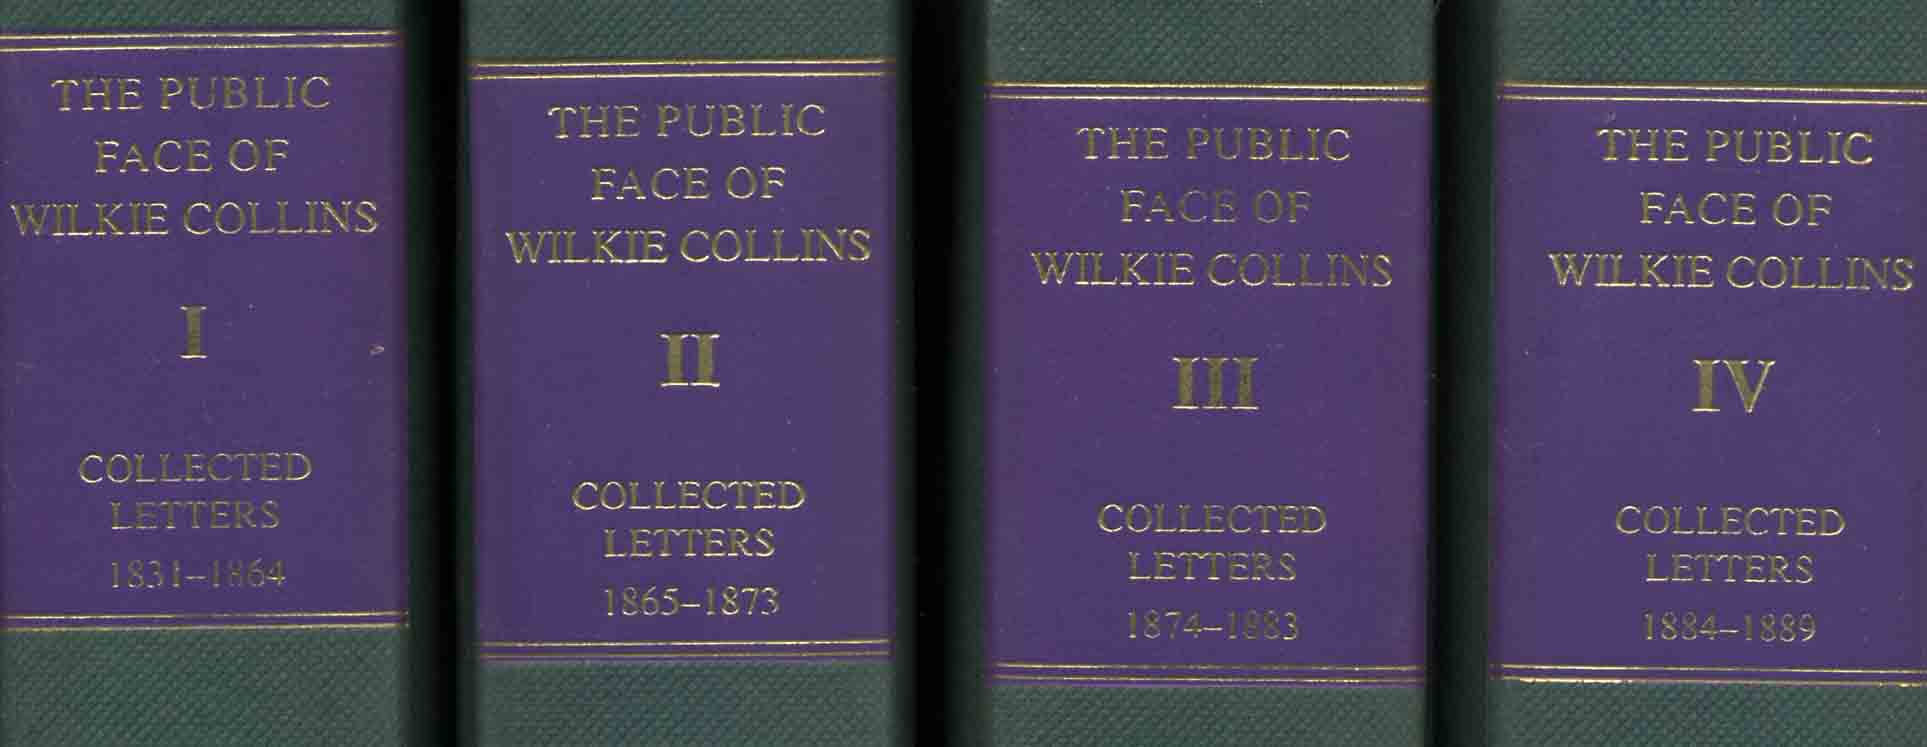 Public Face of Wilkie Collins